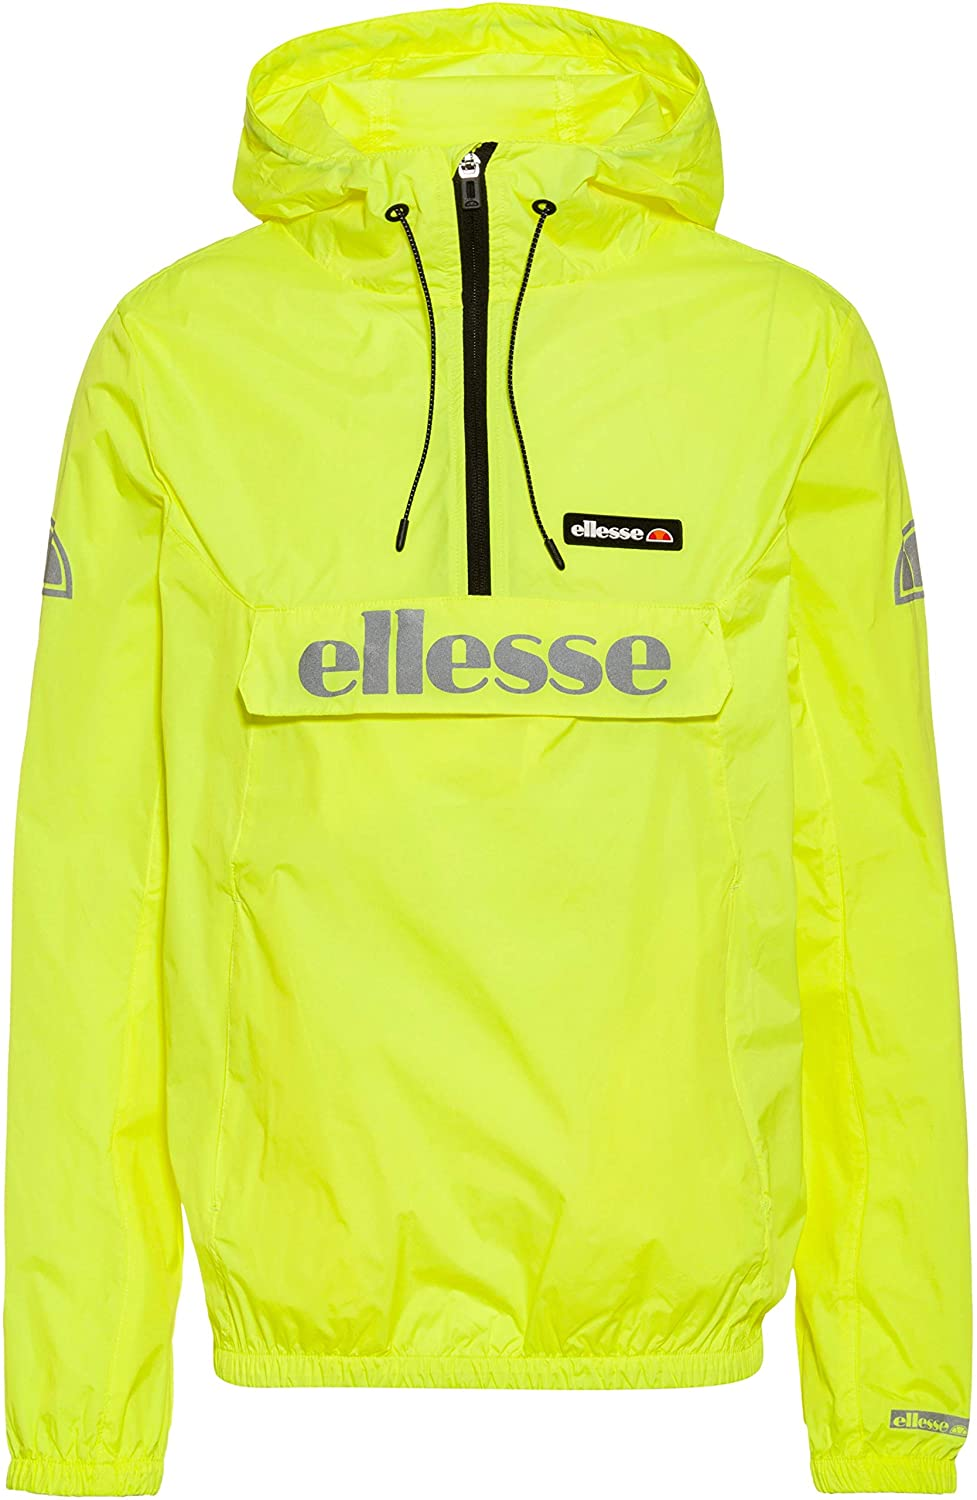 ellesse Berto OH Rain Jacket in Neon Yellow Large